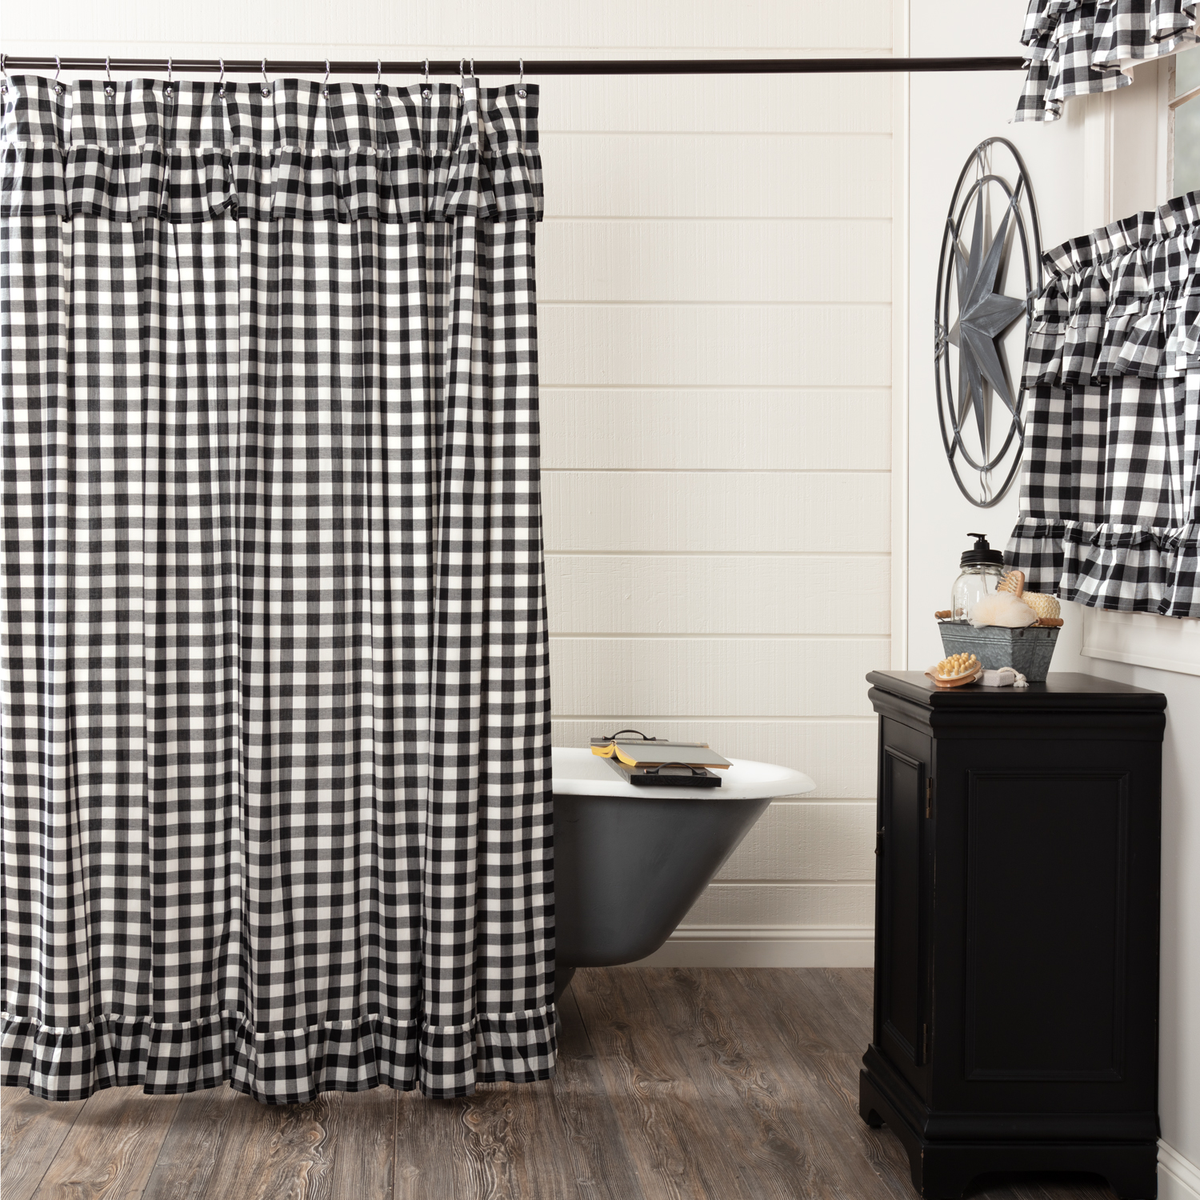 Annie Buffalo Black Check Ruffled Shower Curtain 72x72 Gorgeously Adds A Rustic Romance Feel To Your